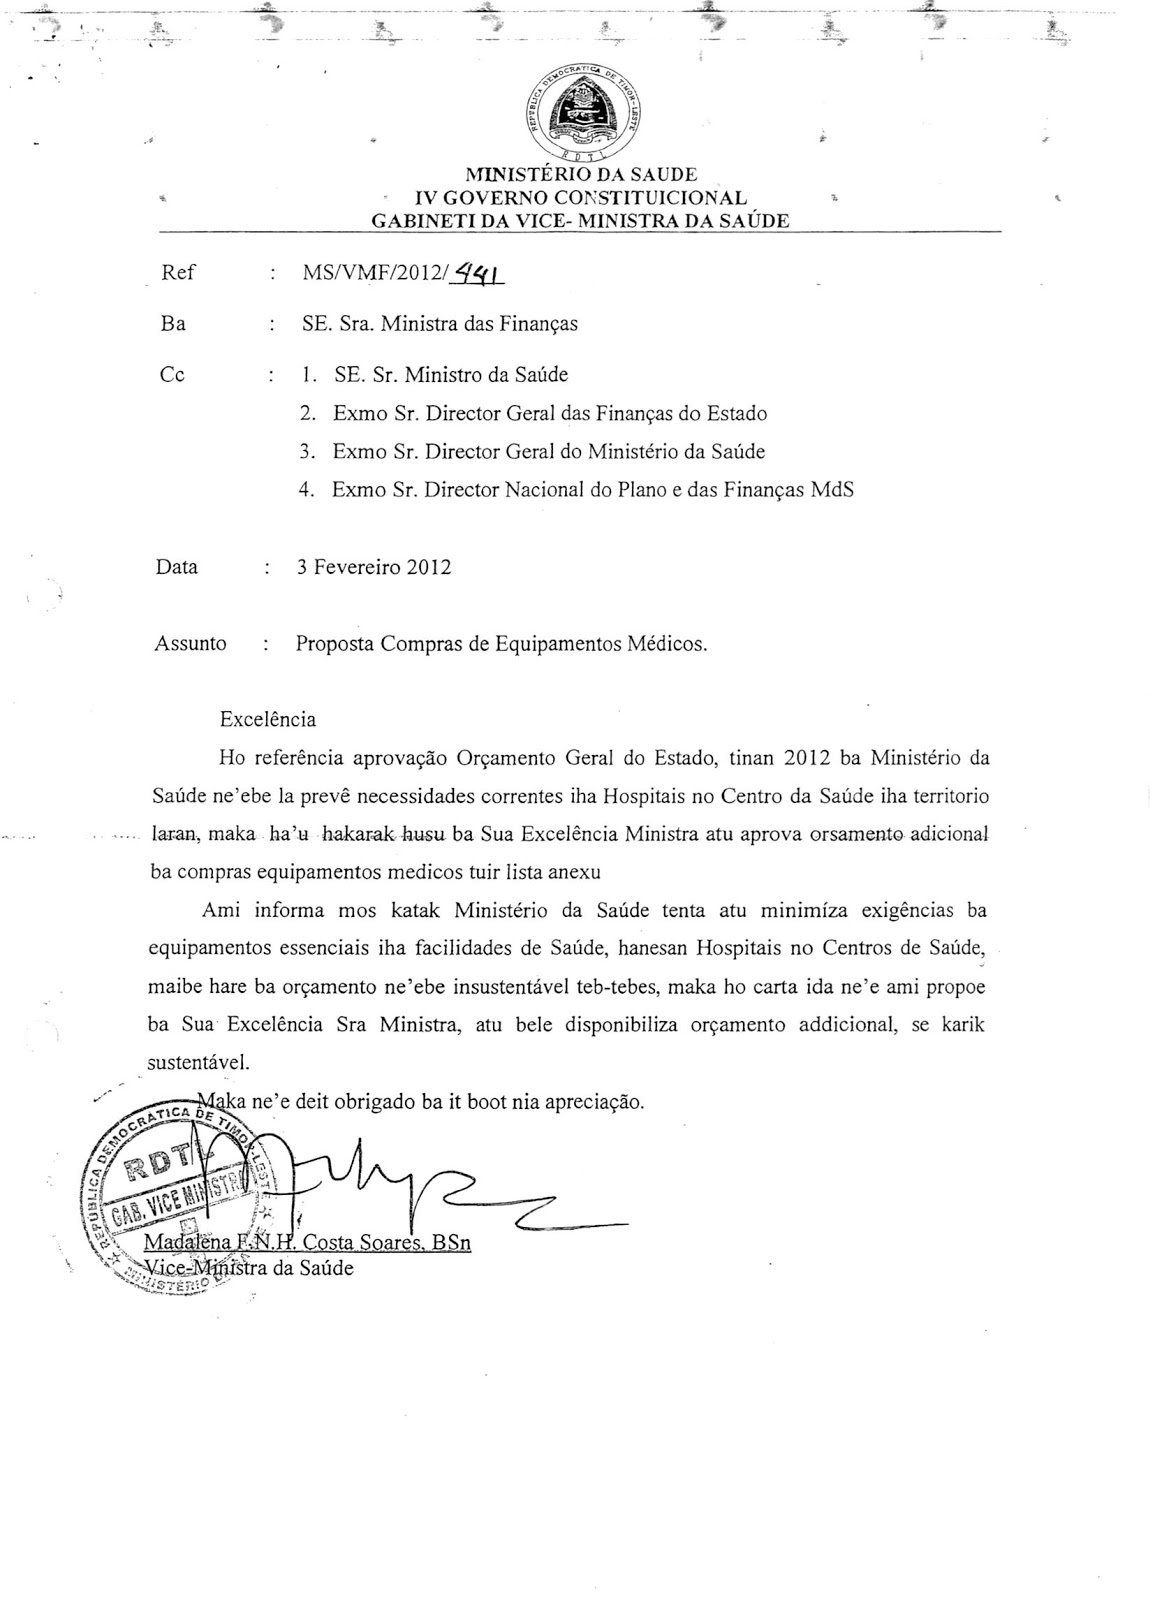 TEMPO SEMANAL MINISTER OF FINANCE EMILIA PIRES APPROVES